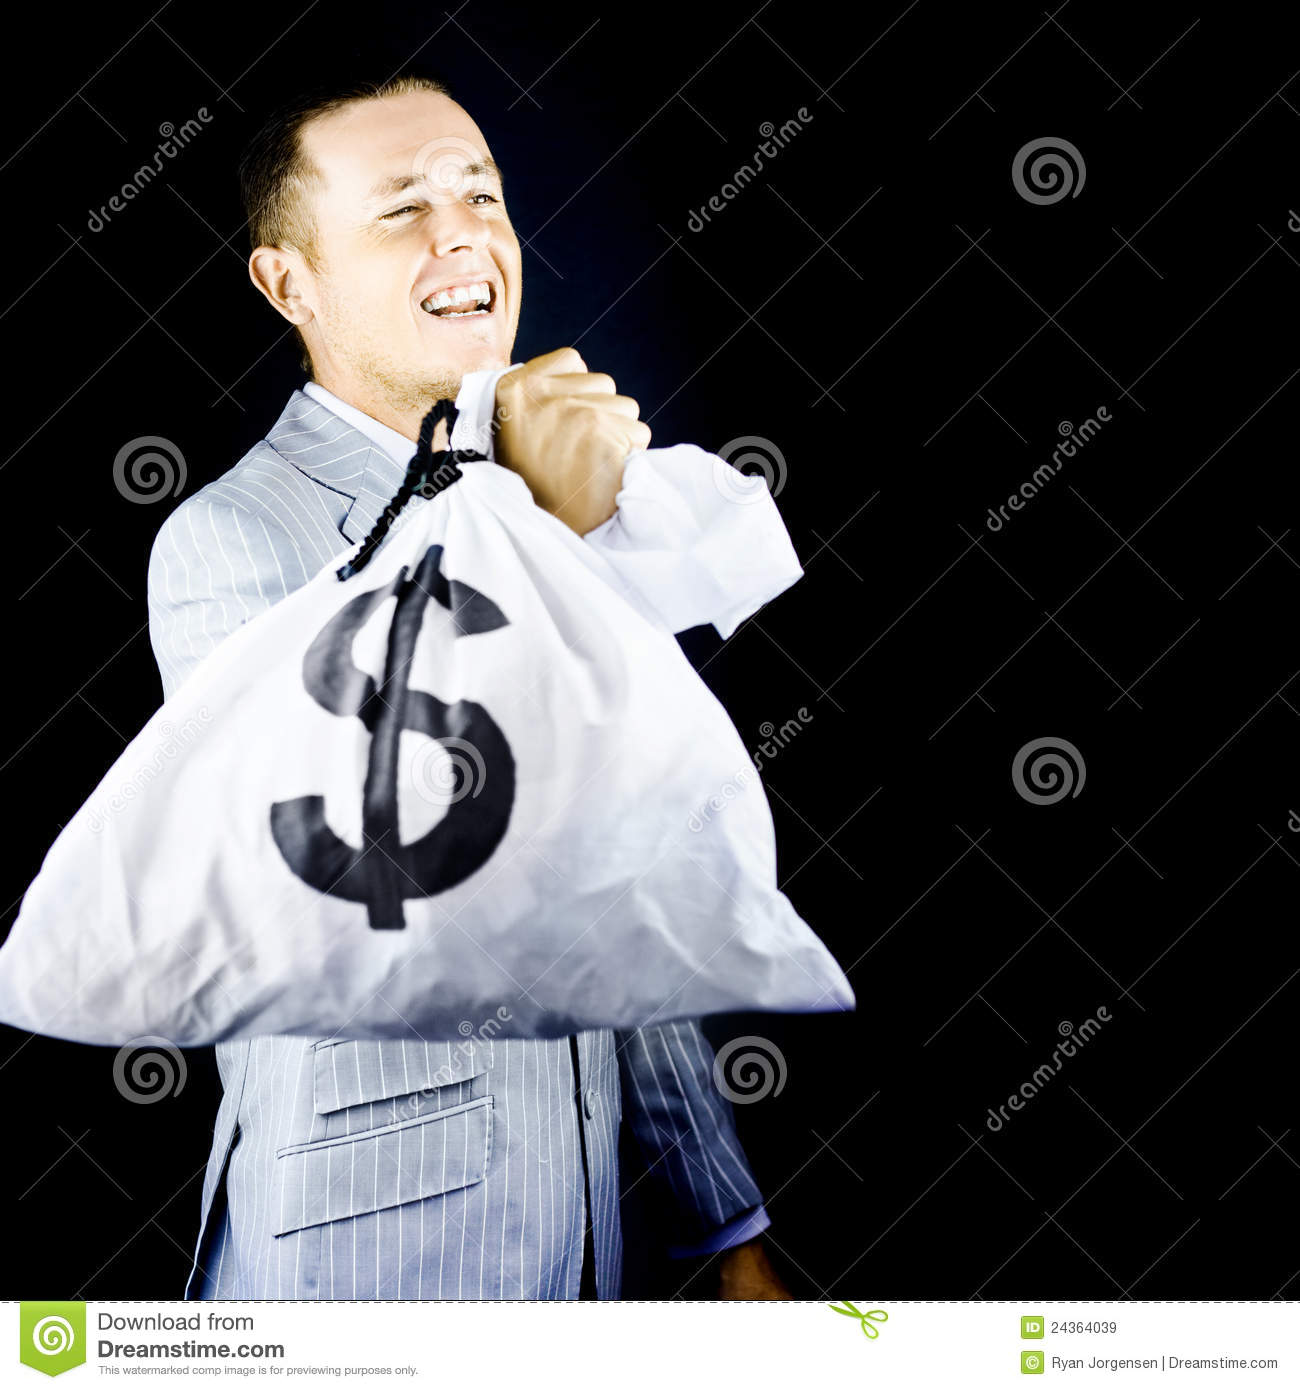 Pict New Shopping Pictograms Vector Stencils Library   Diagram Flowchart Ex le in addition Wedding Card Box Putting Envelopes Gifts Money Usually furthermore Vintage Western Money Bag Woodcut Style Editable Eps Vector Illustration additionally Clown Holding Gun Scary Bag Full Money in addition Money Bag. on money bag vector